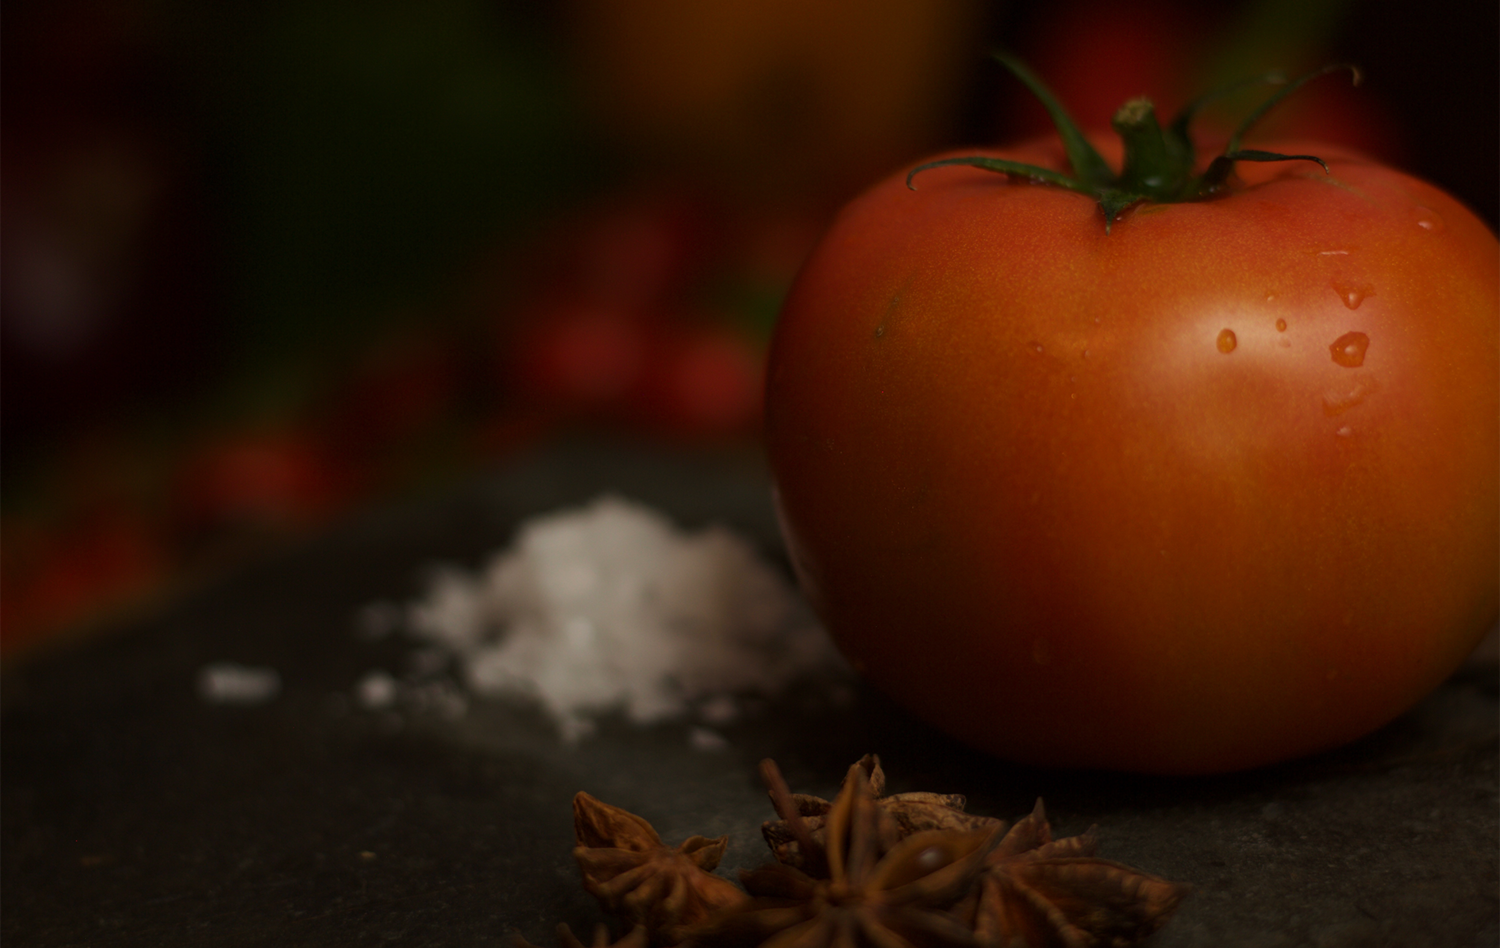 tomato2017.png